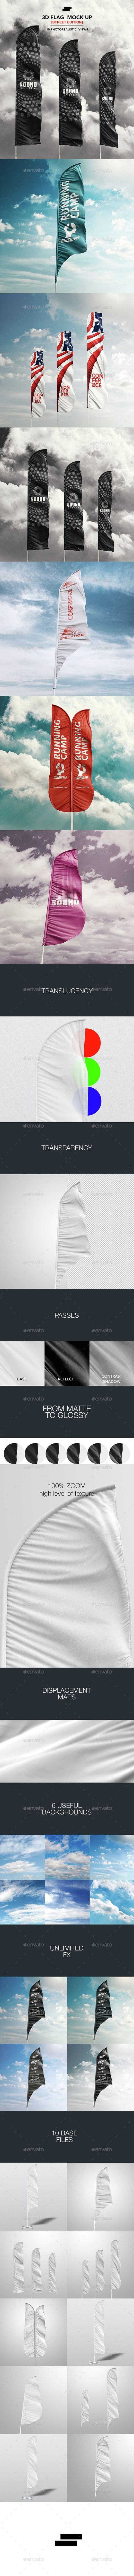 3D Feather Flags / Bow / Sail Flag Mockup. Download here: http://graphicriver.net/item/3d-feather-flags-bow-sail-flag-mockup/14621793?ref=ksioks